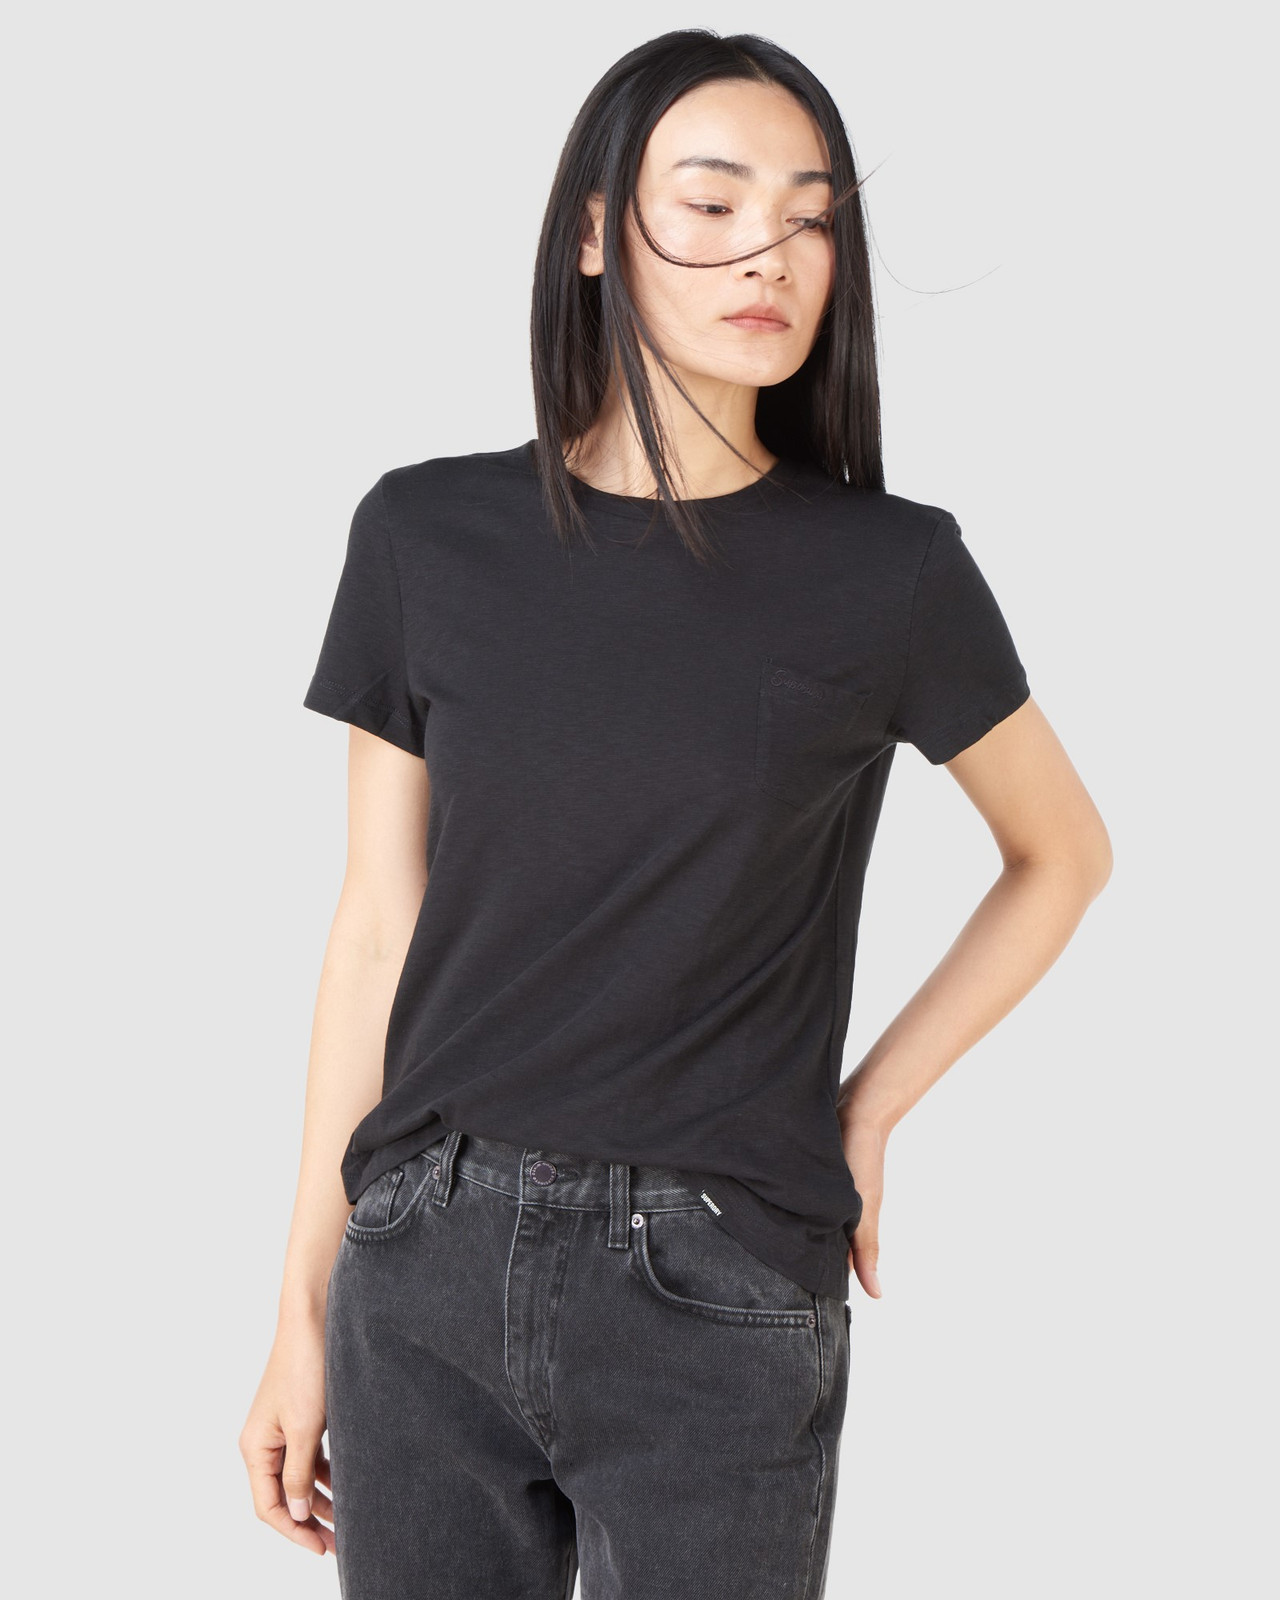 Superdry Womens SCRIPTED CREW TEE Black Plain T Shirts 2